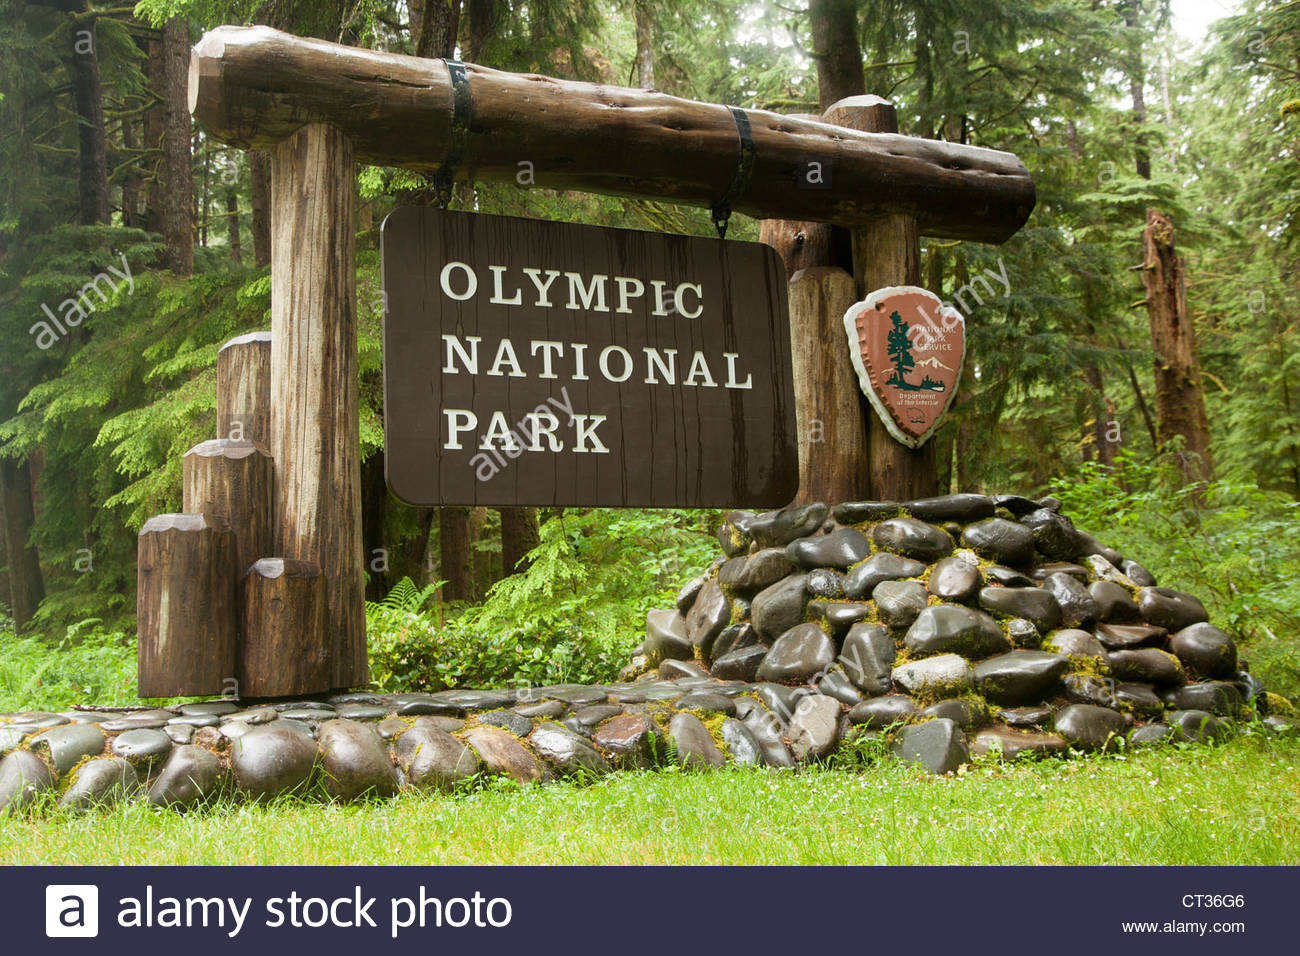 Olympic National Park Sign, Washington Stock Photo. Smiley Signs. Endocrine Signs. Triangle Shaped Signs. Secret Signs. Aquarius Signs. Historical Signs. Work Site Signs. Counter Signs